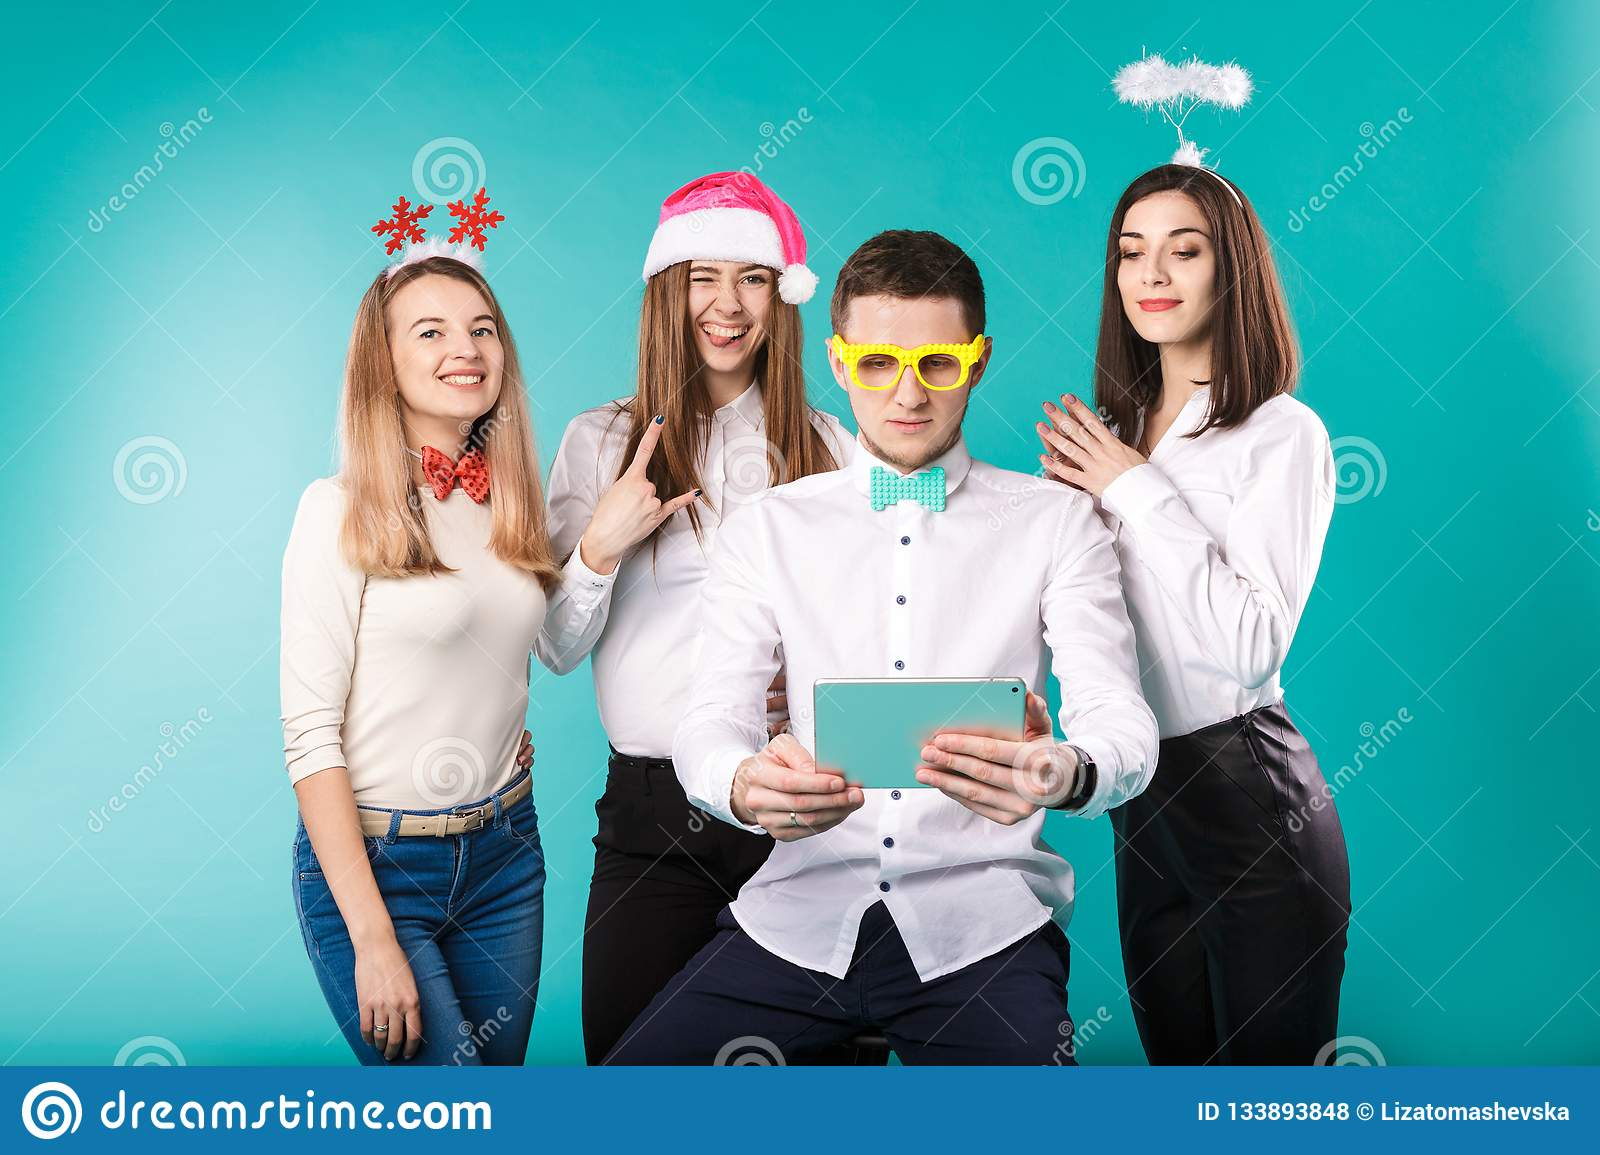 New Year theme Christmas winter office company employees. Group 4 young Caucasian people business smile holiday funny hats